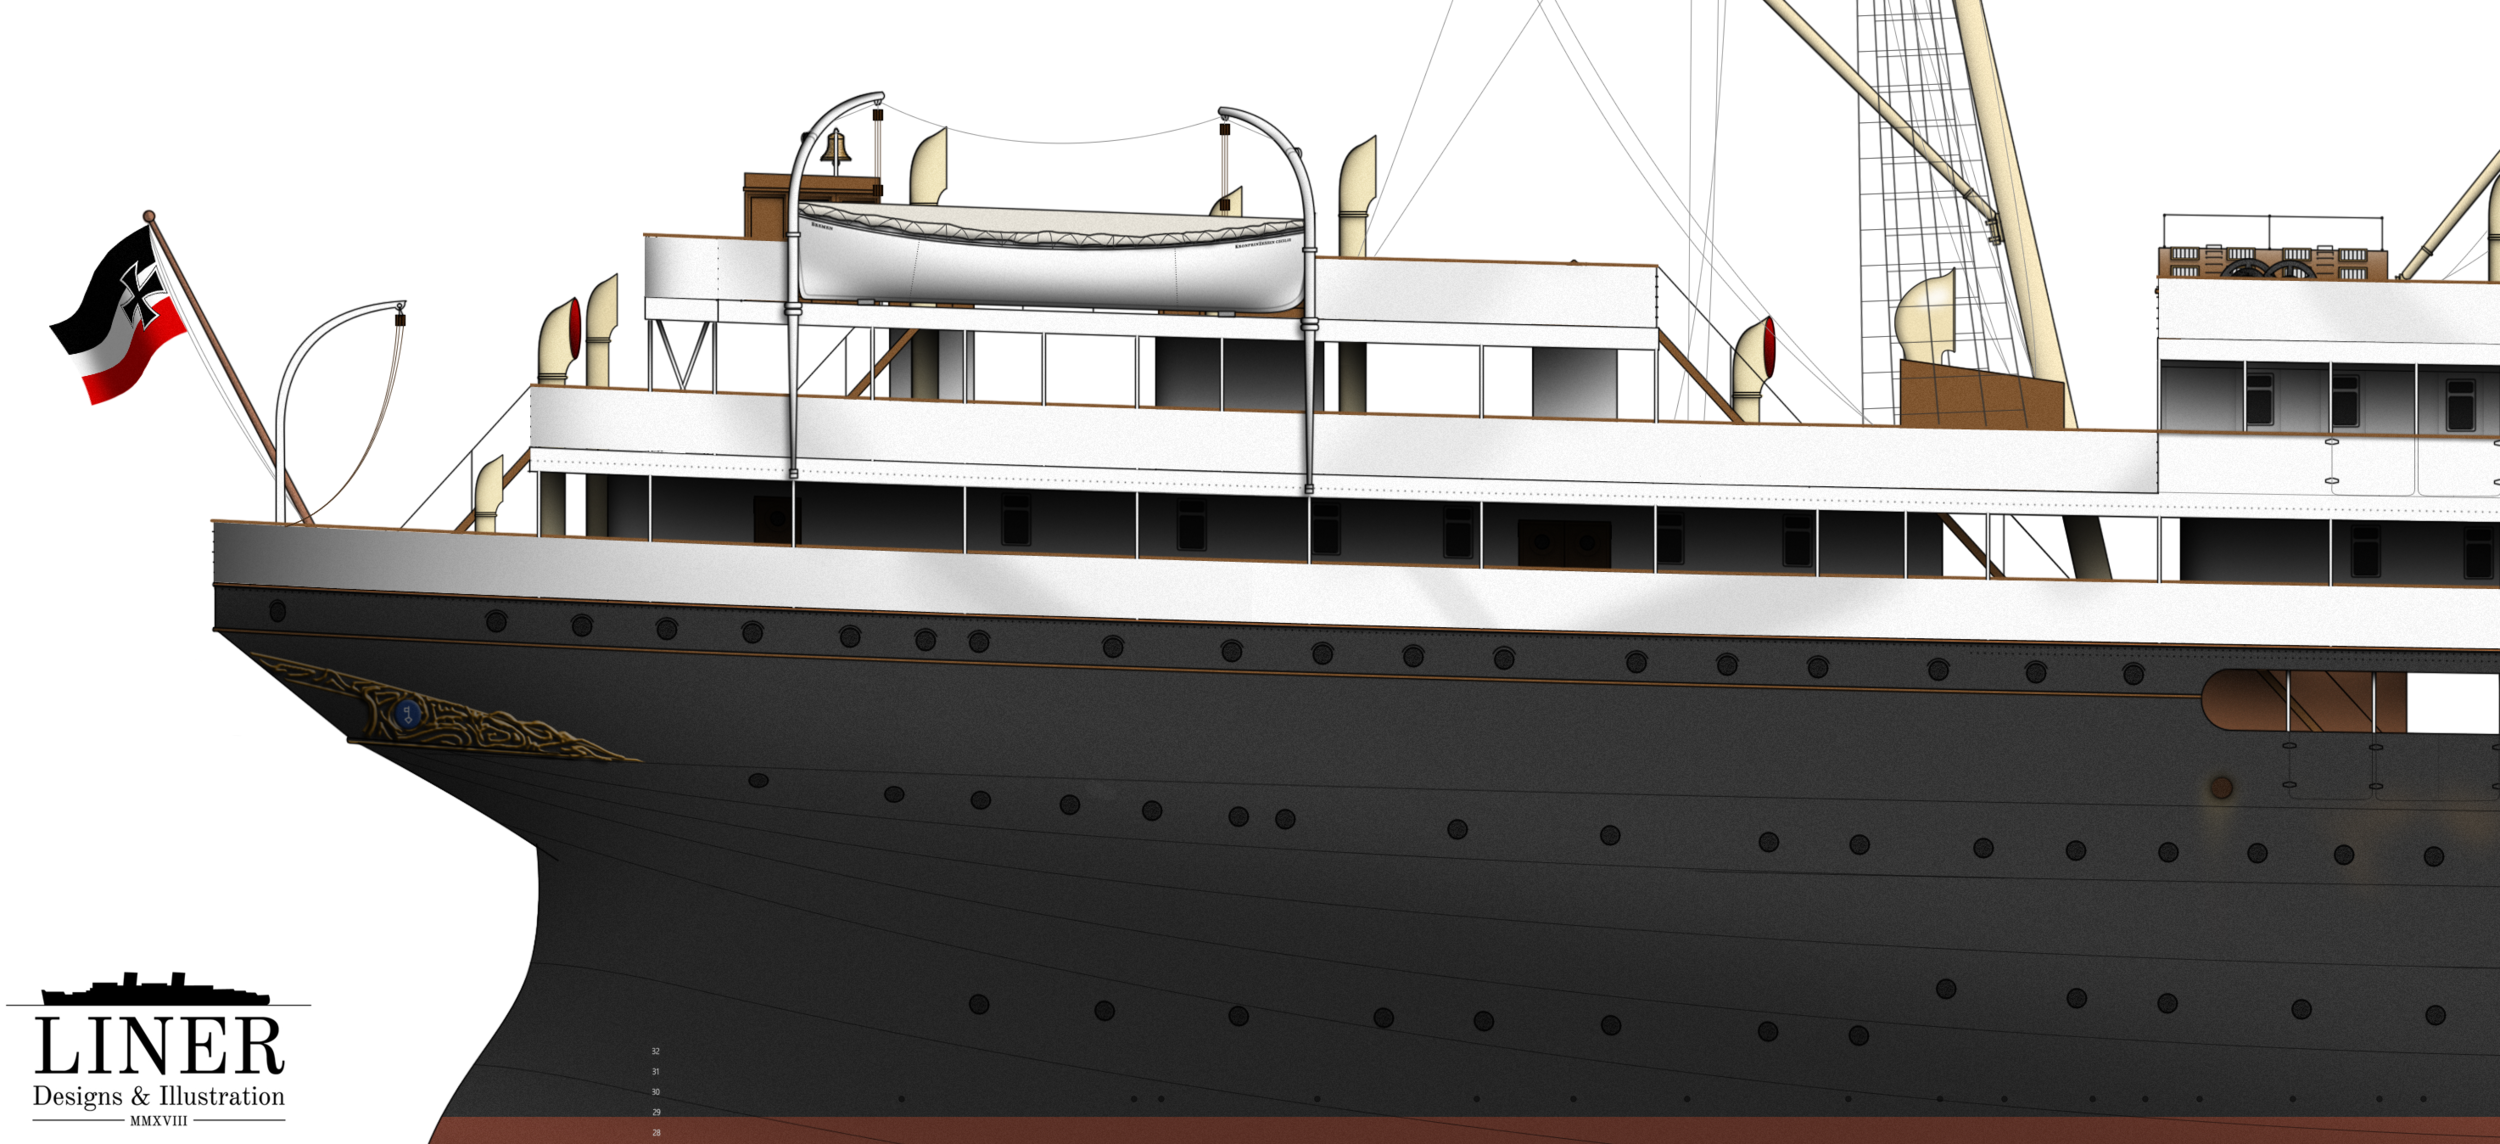 Cecilie's elegant clipper stern featured a prominent decorative gold motif.